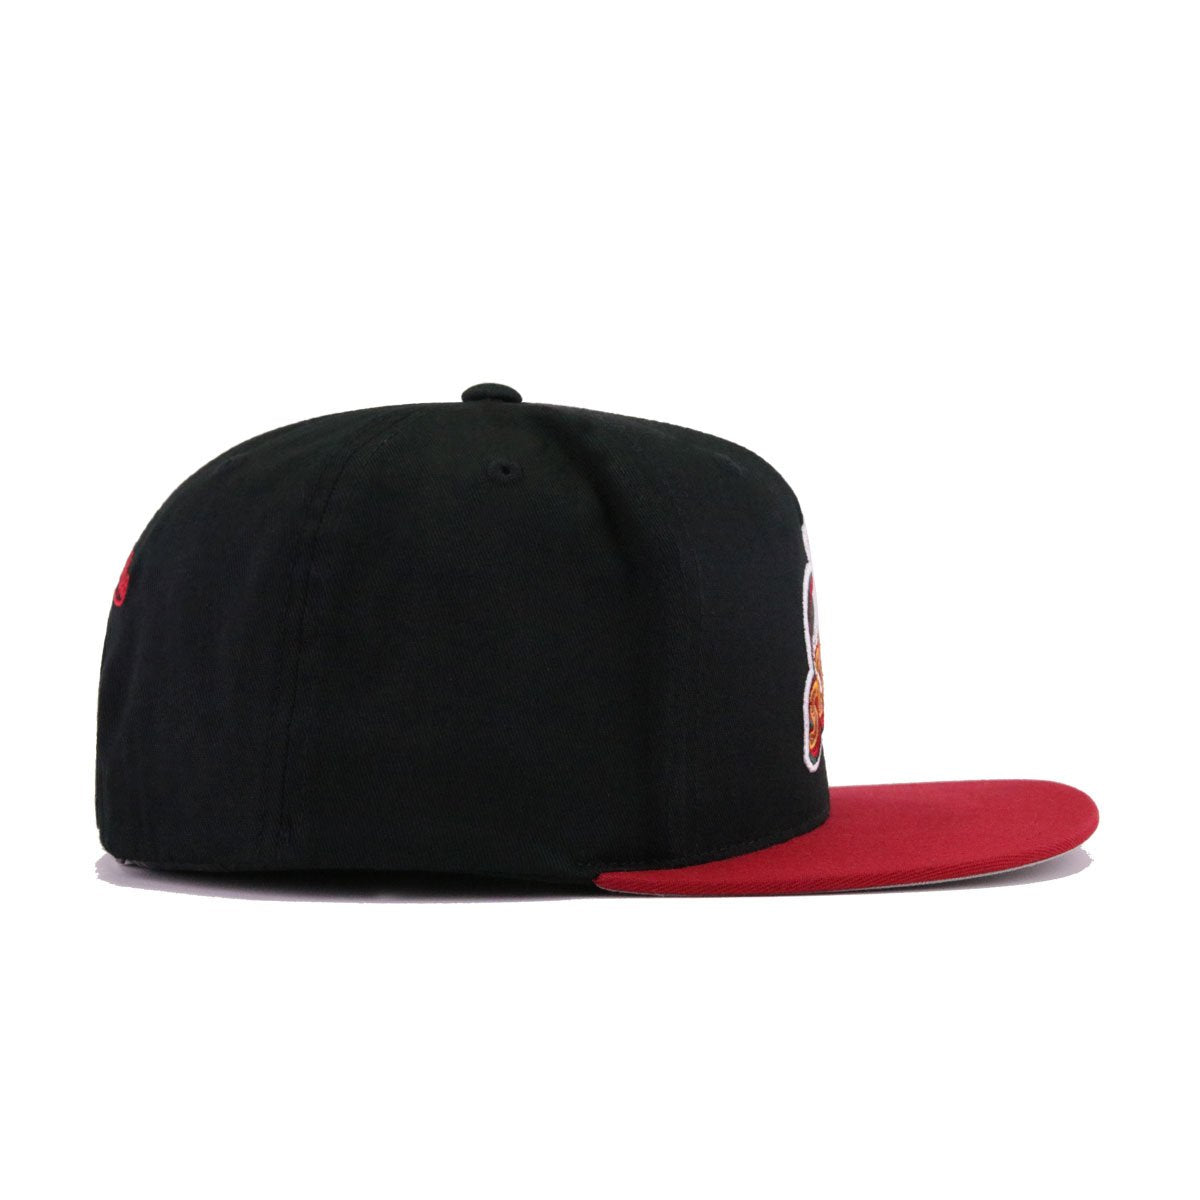 Seattle Supersonics Black Cardinal Red Hardwood Classics Mitchell and Ness Snapback